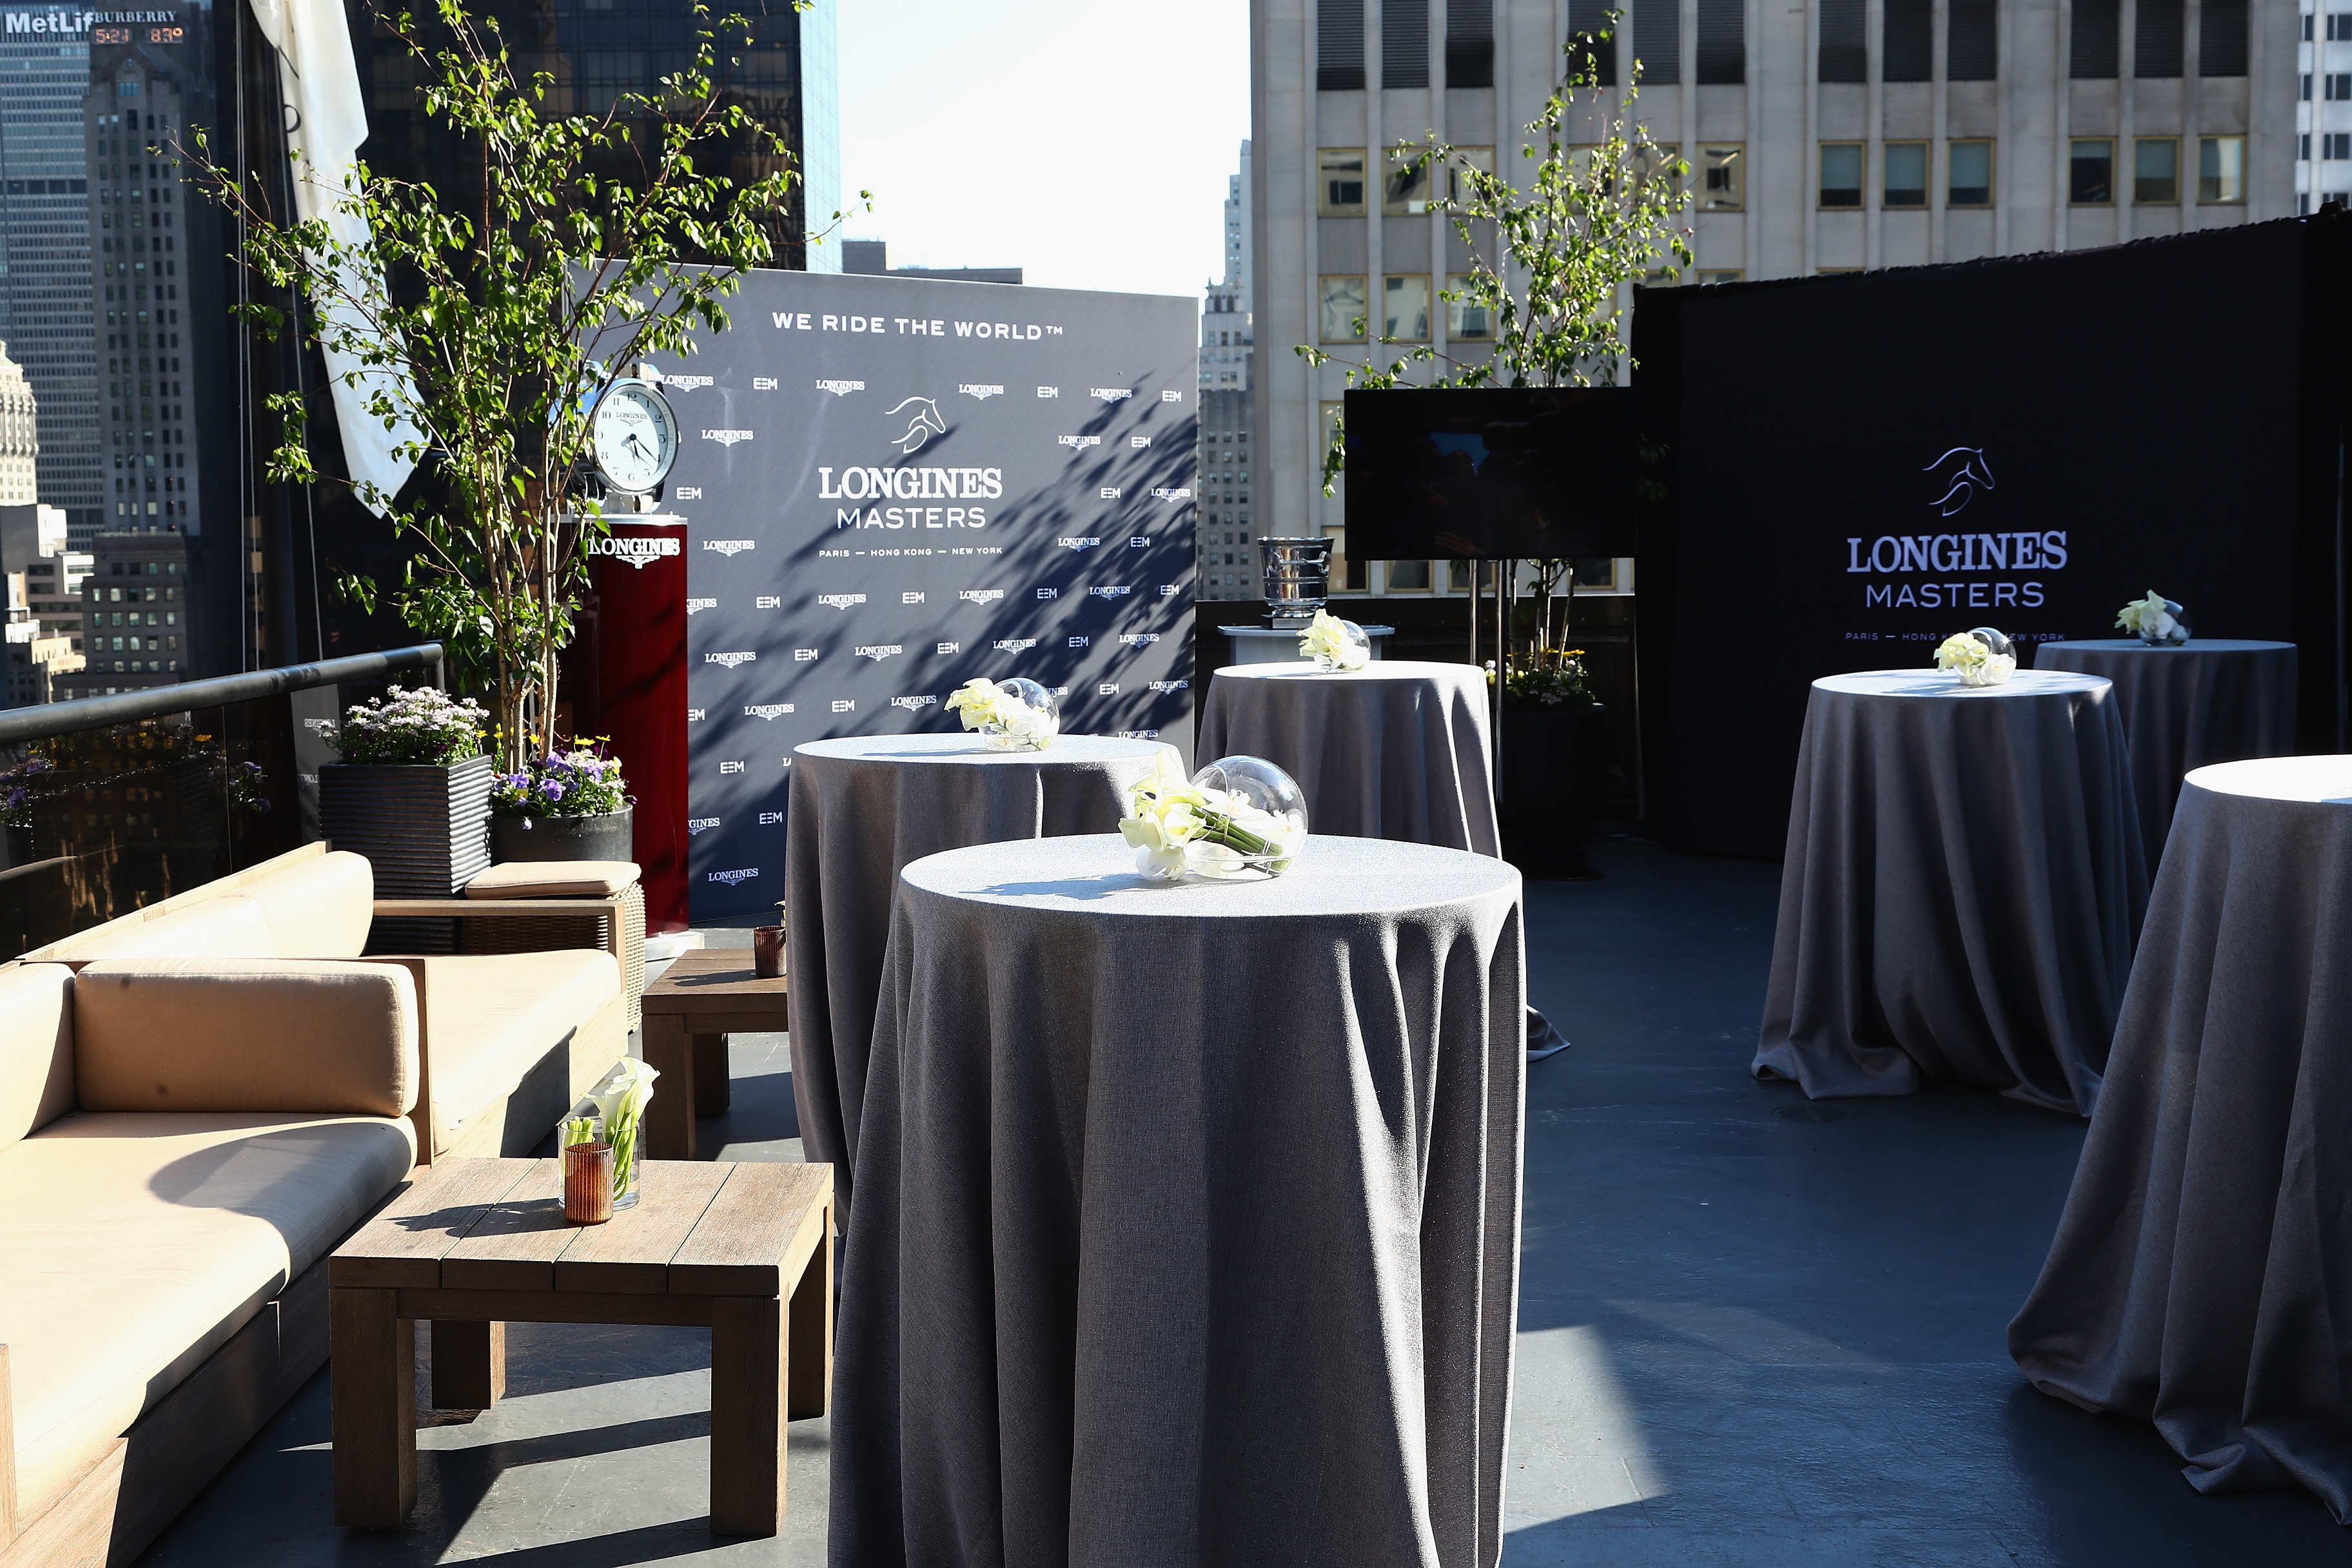 NEW YORK, NY - MAY 17: A view of the Longines Masters launch party celebrating Series' epic move to New York at Salon de Ning on May 17, 2017 in New York City. (Photo by Astrid Stawiarz/Getty Images for Longines)